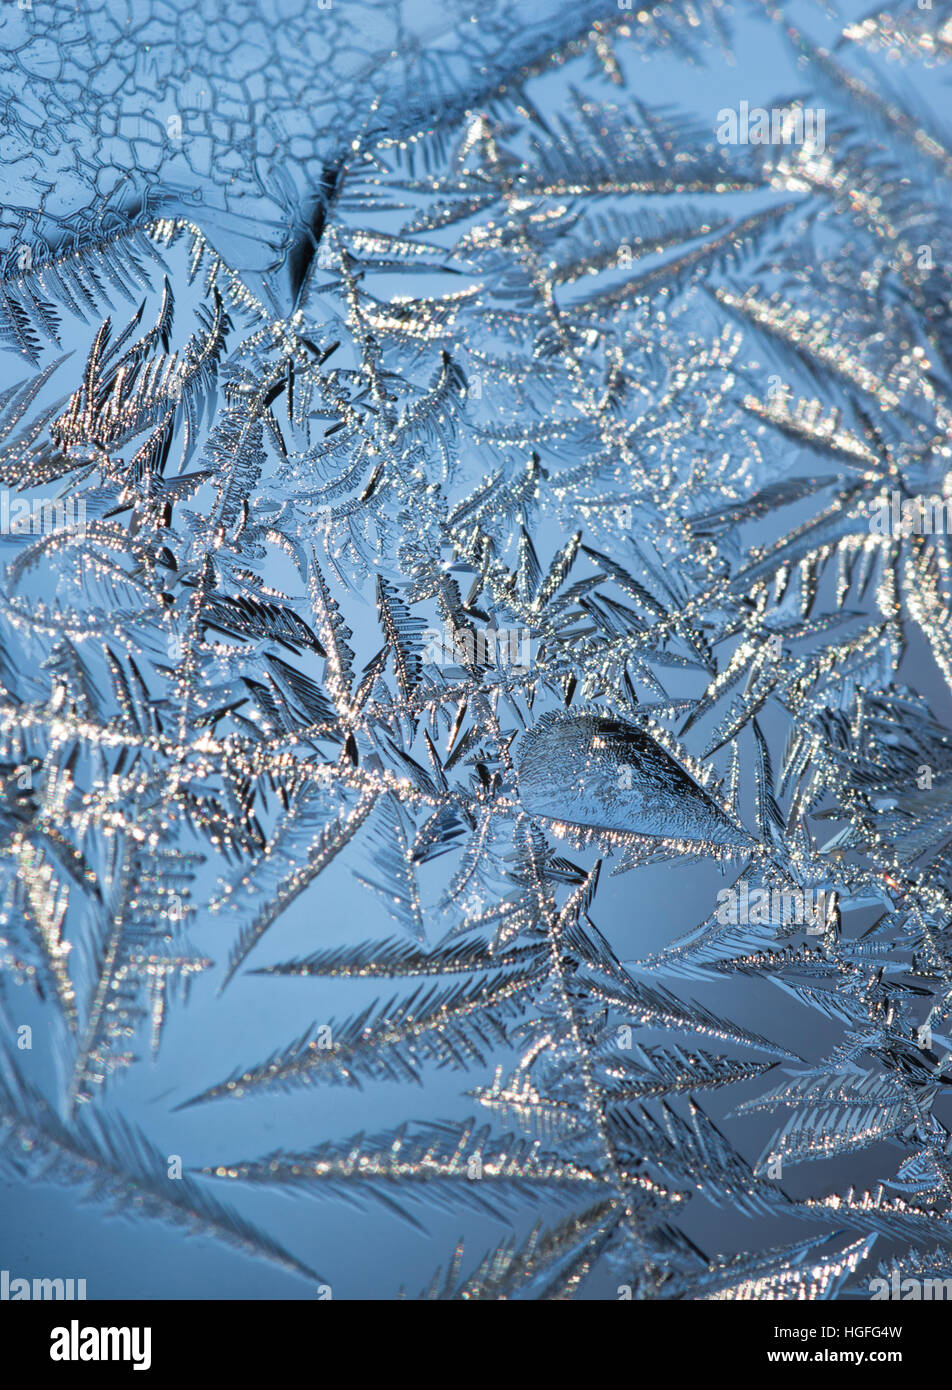 Close up of ice crystals forming intricate leafy patterns on a window with blue sky in the background. Shallow depth Stock Photo